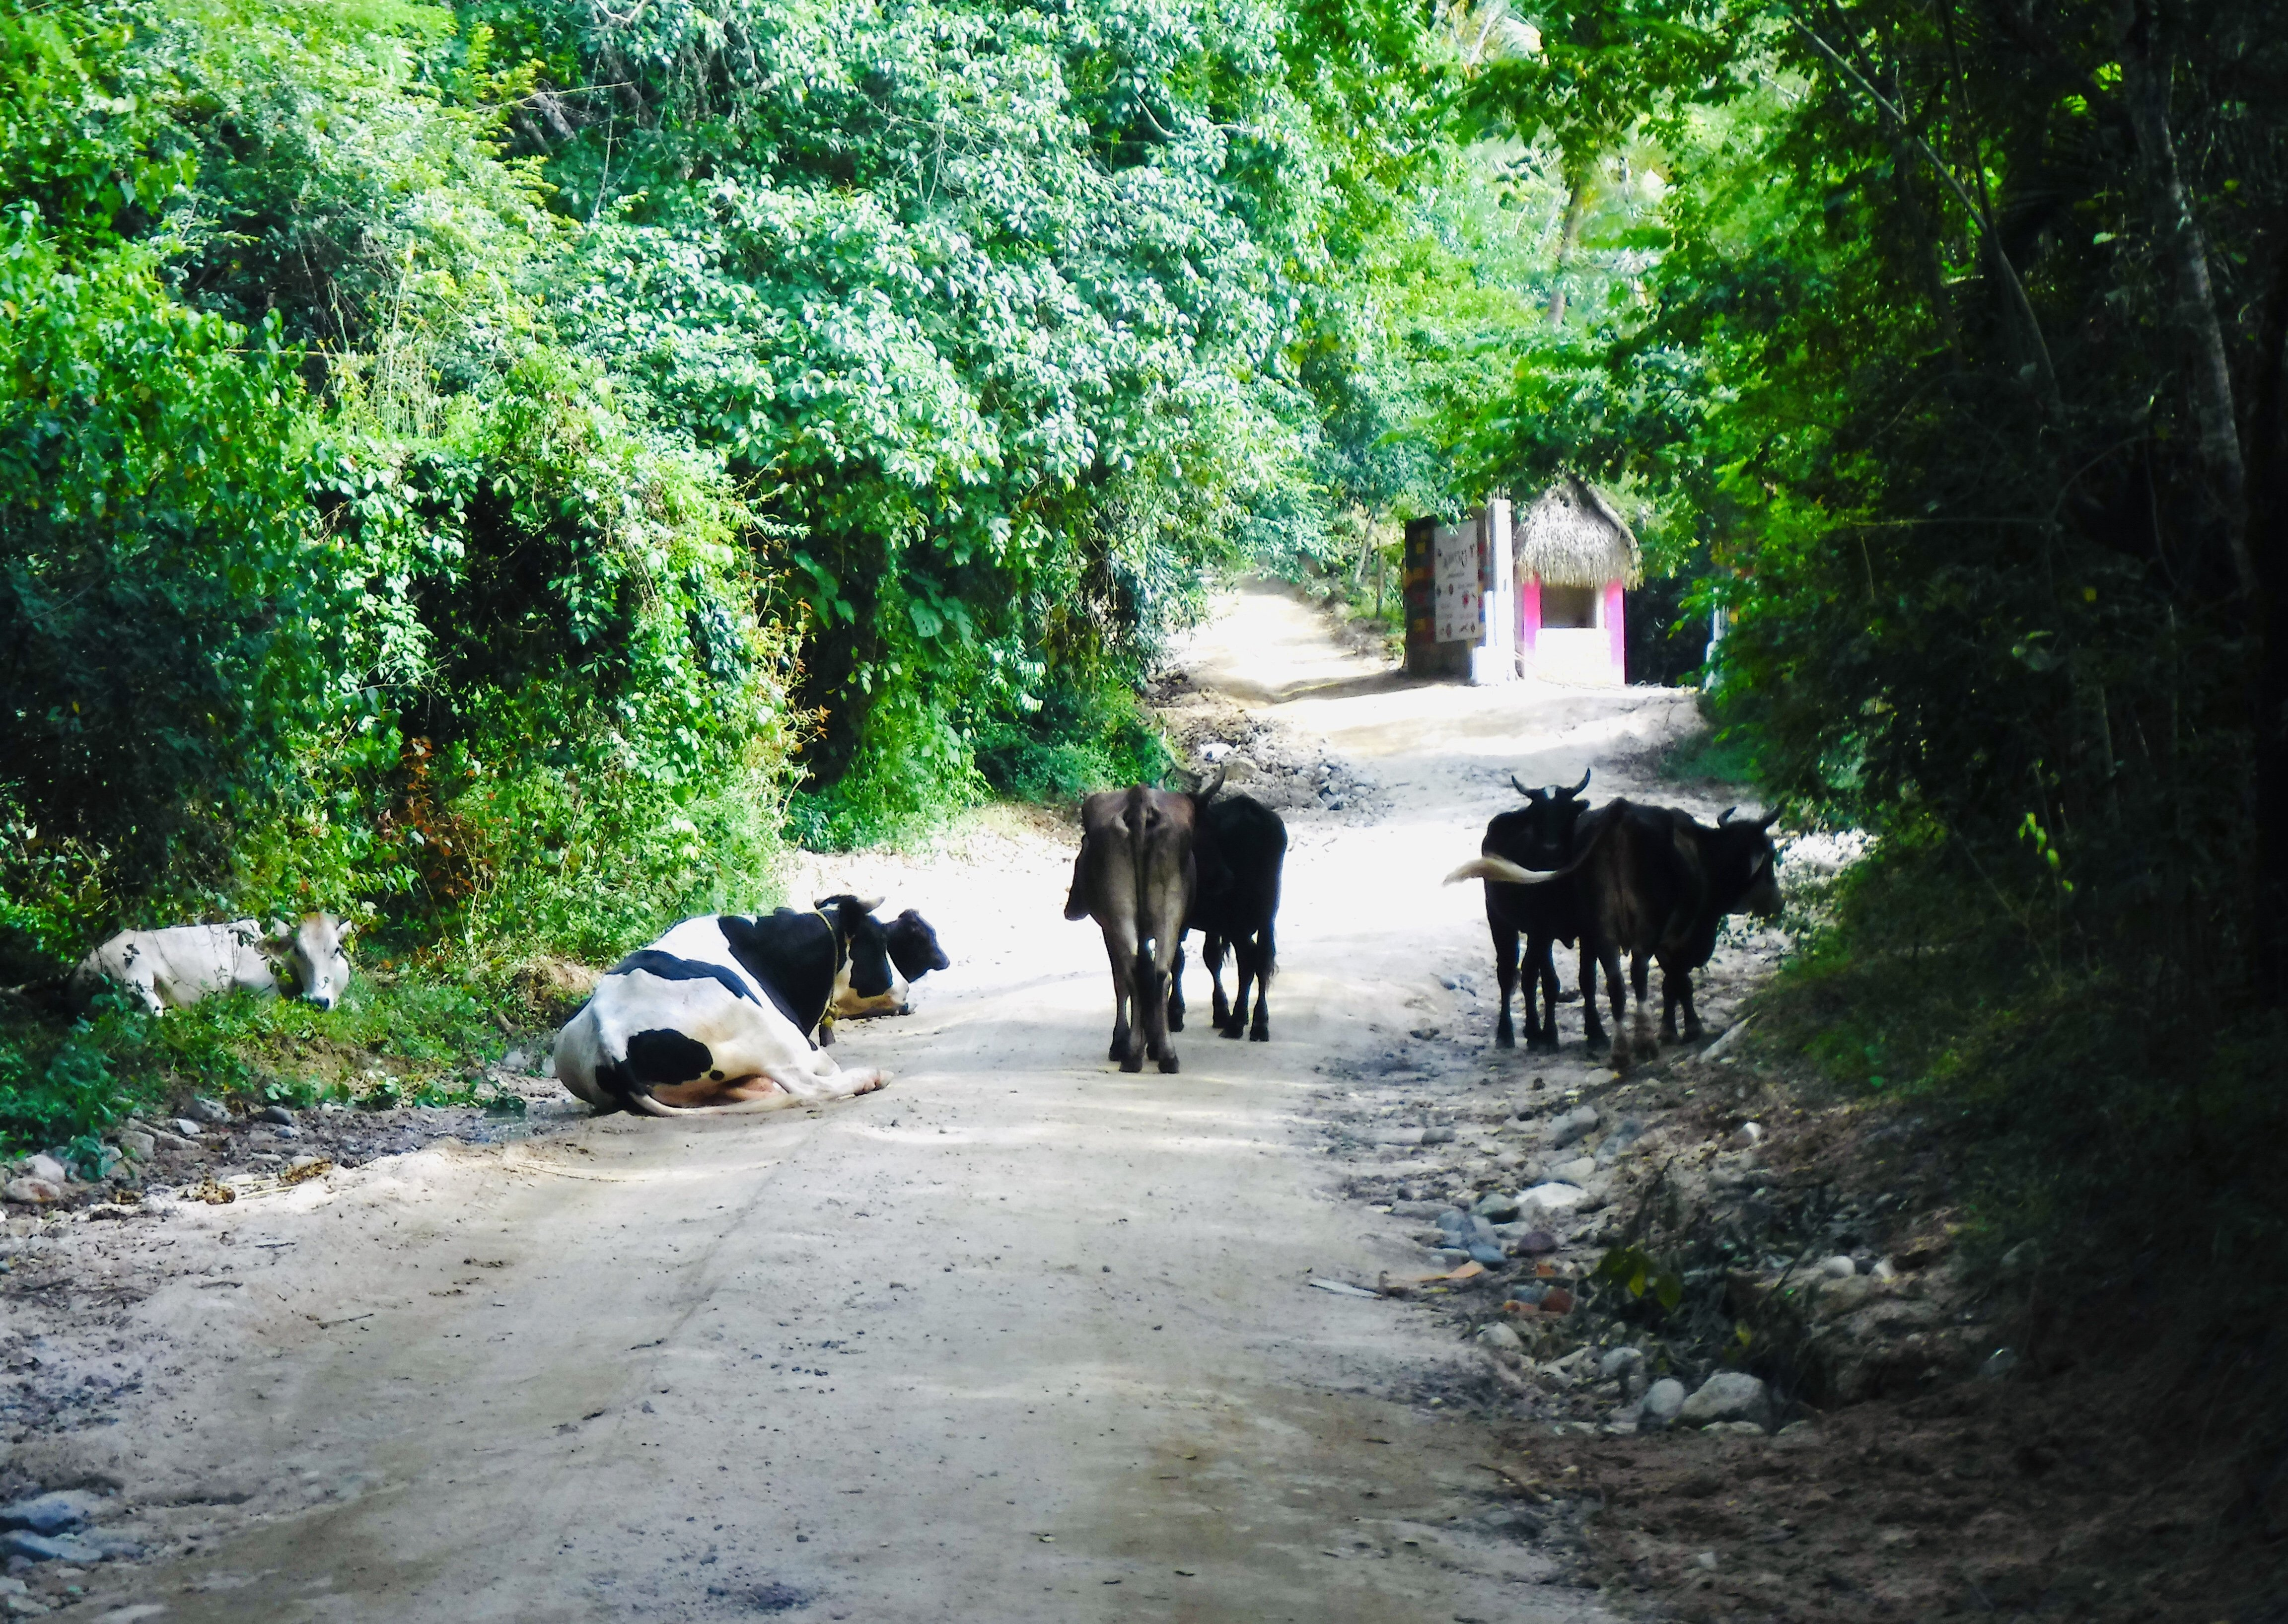 Cows blocking the dirt road we were driving up to get to the Predator movie set. 6 Puerto Vallarta Fun Facts